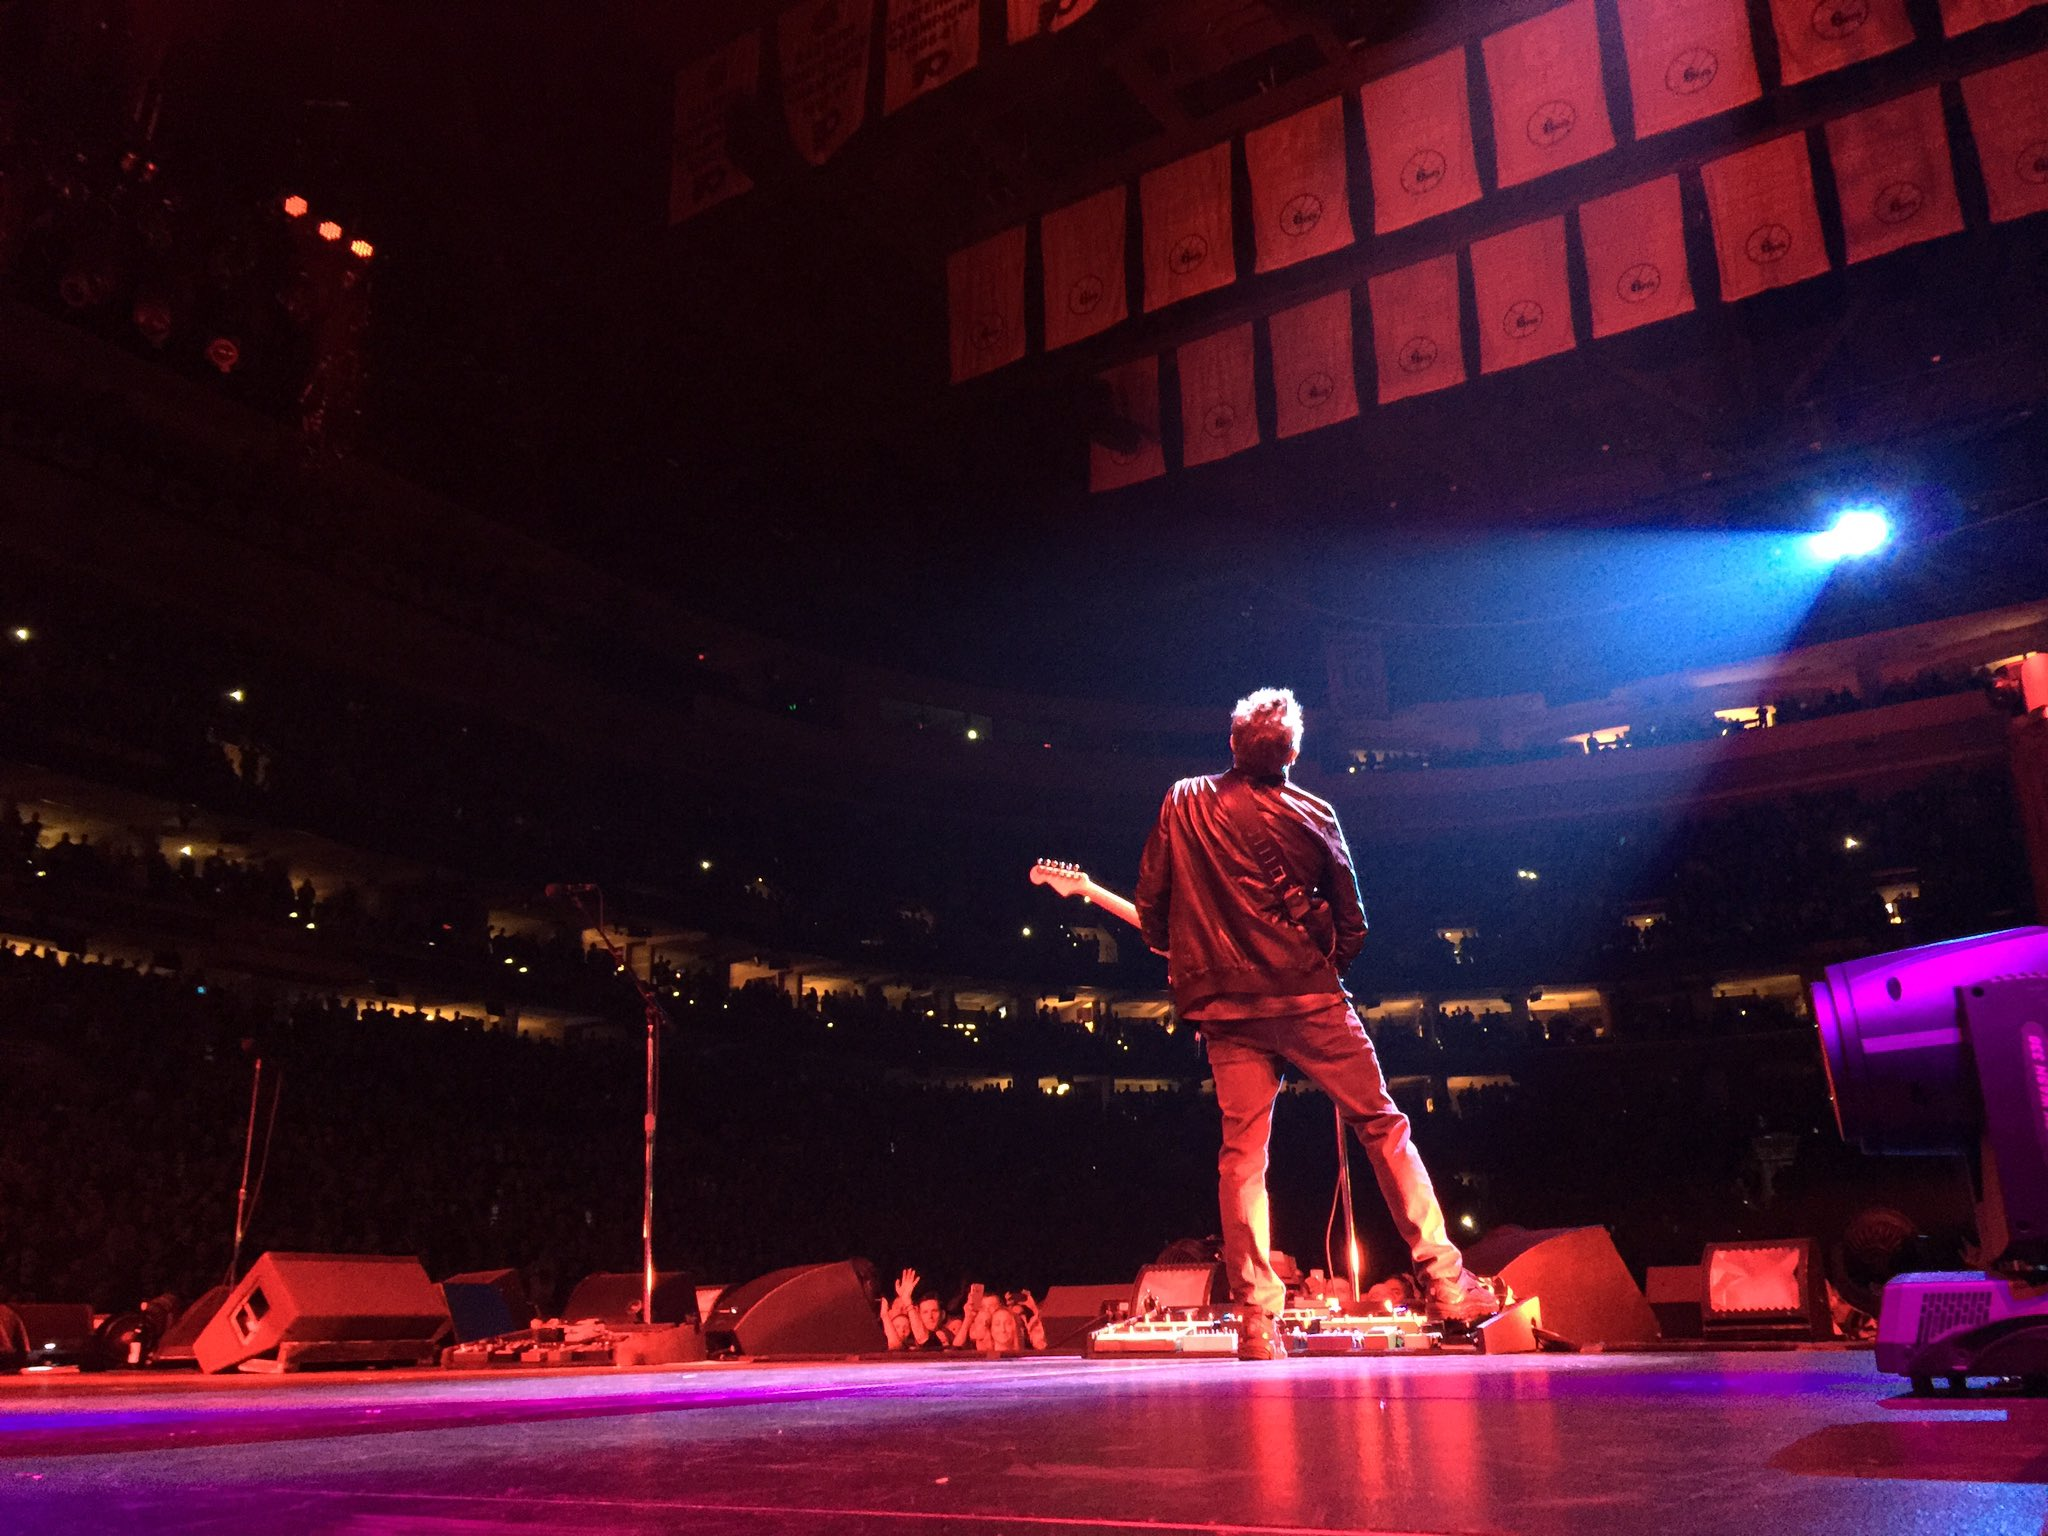 Thank you Philly! Had two amazing nights. #PJPhilly https://t.co/M1Kh8siRSk